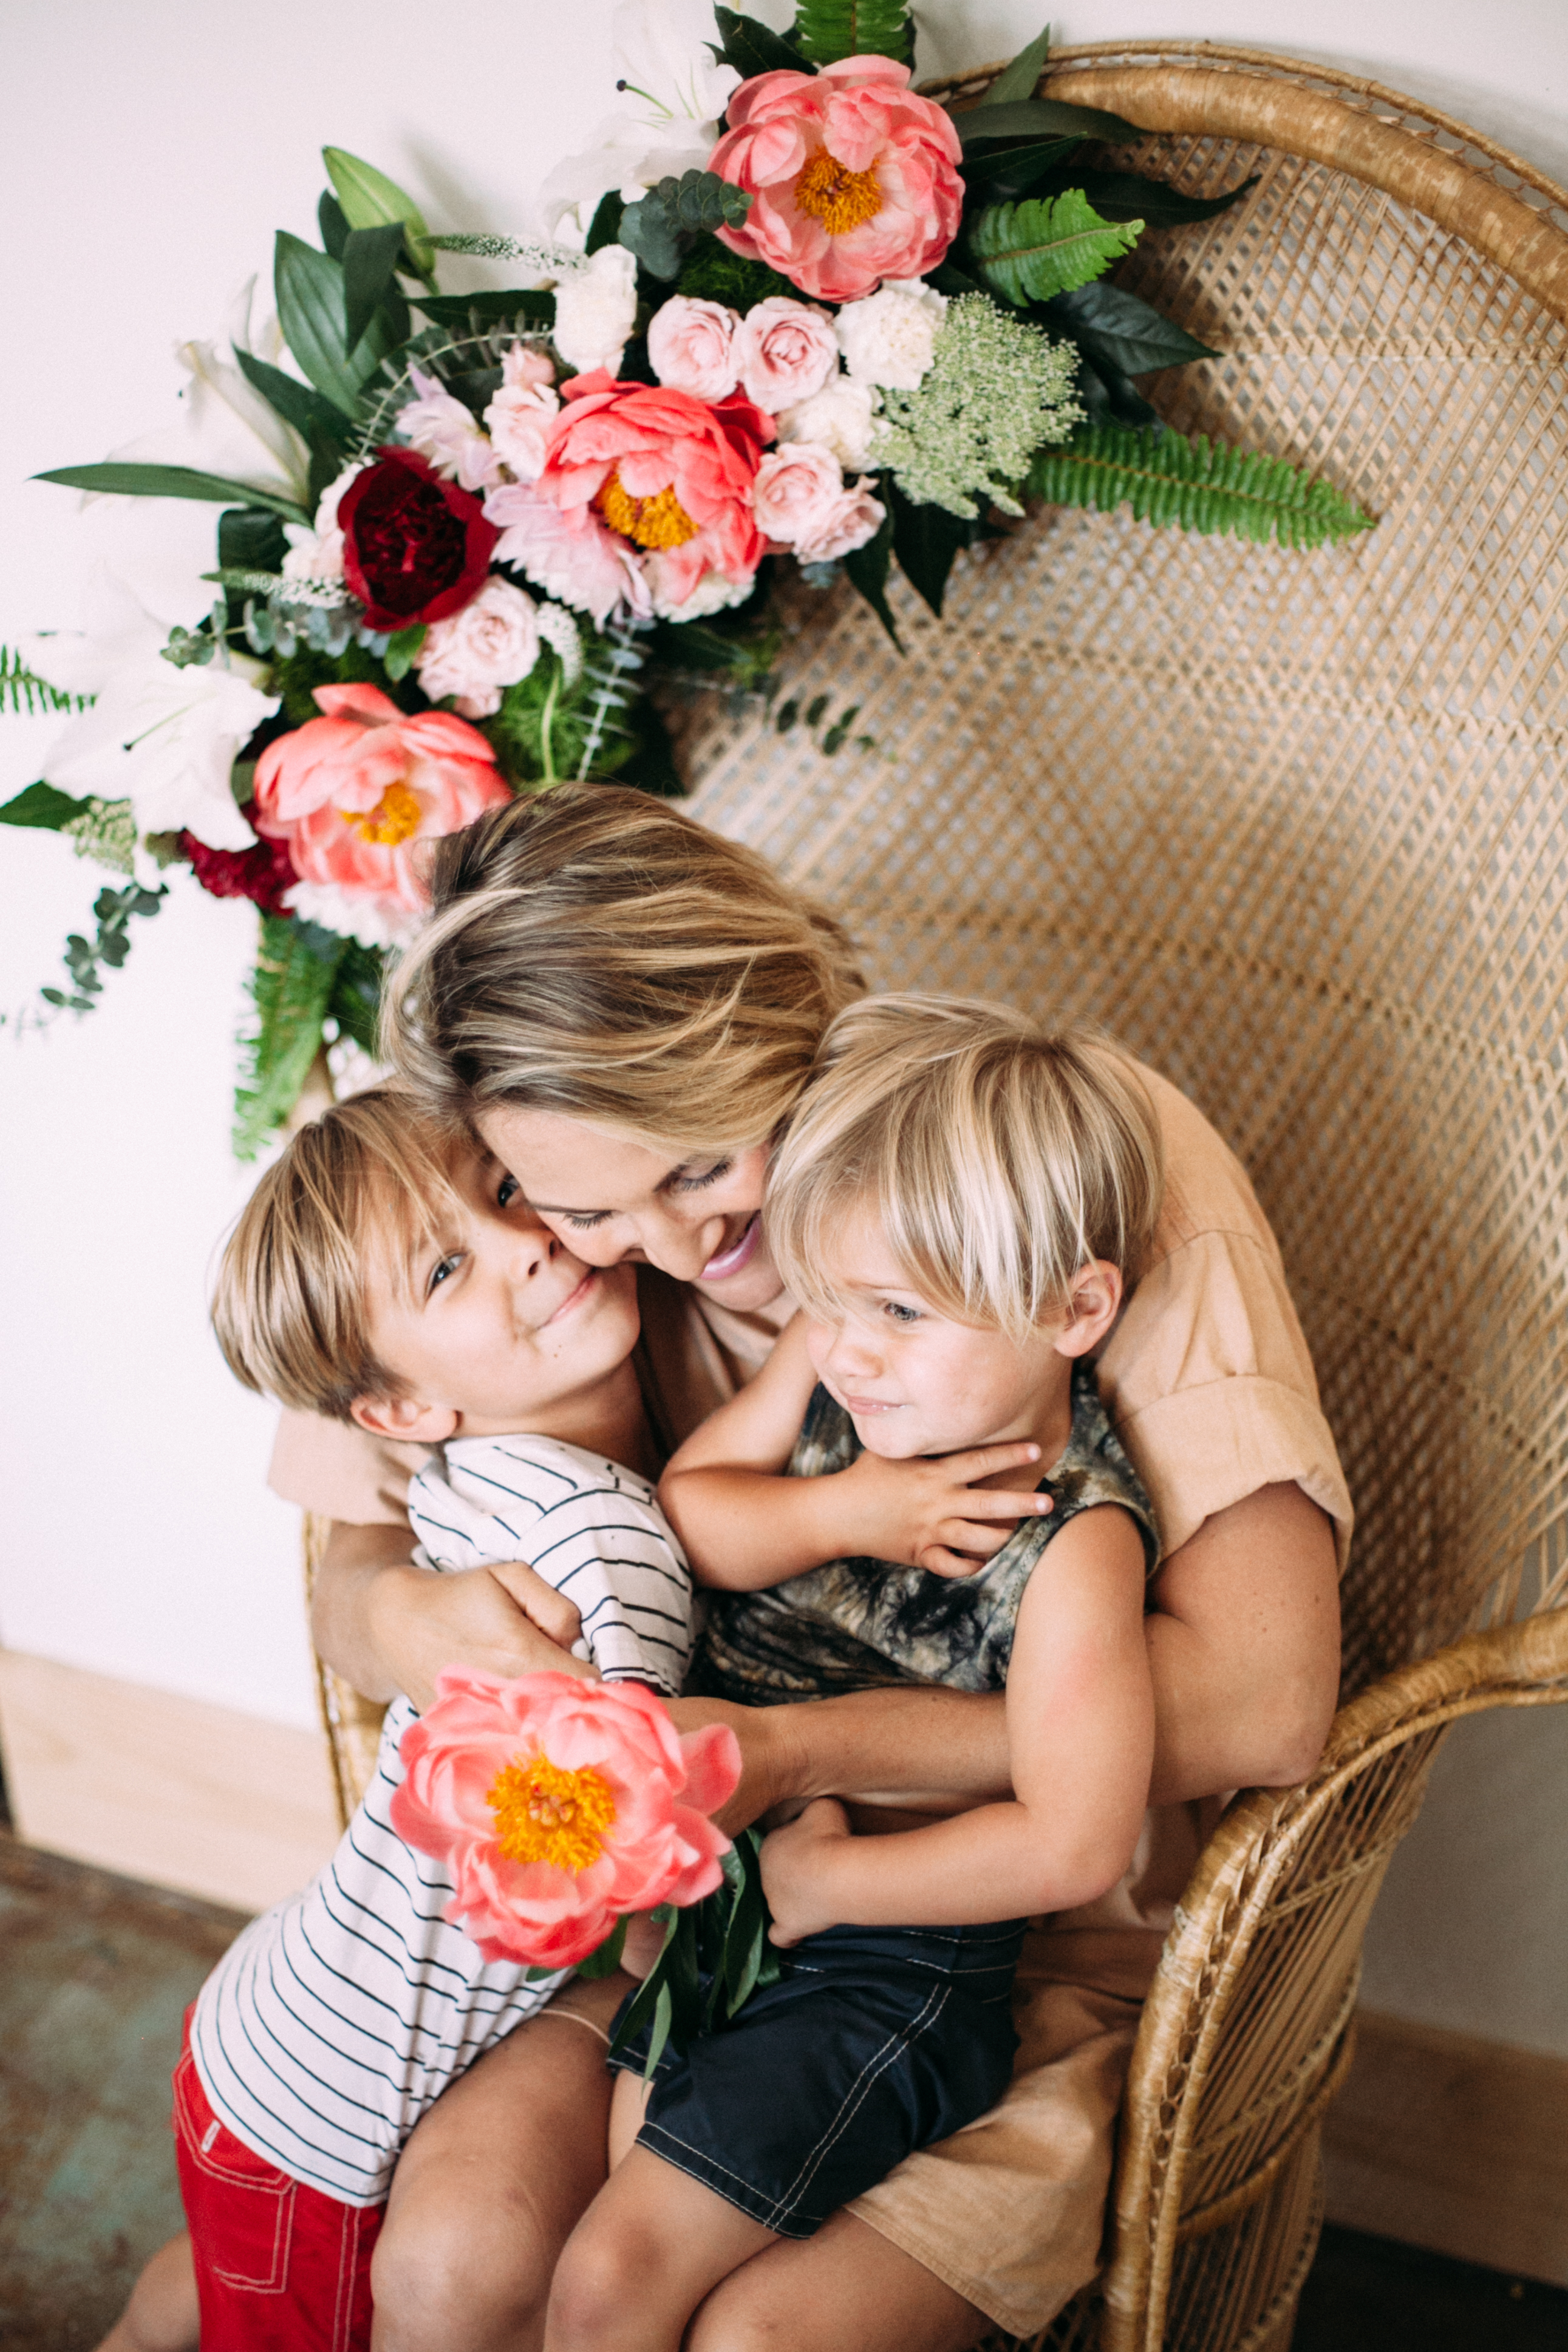 Last Minute Mother's Day Gift Ideas